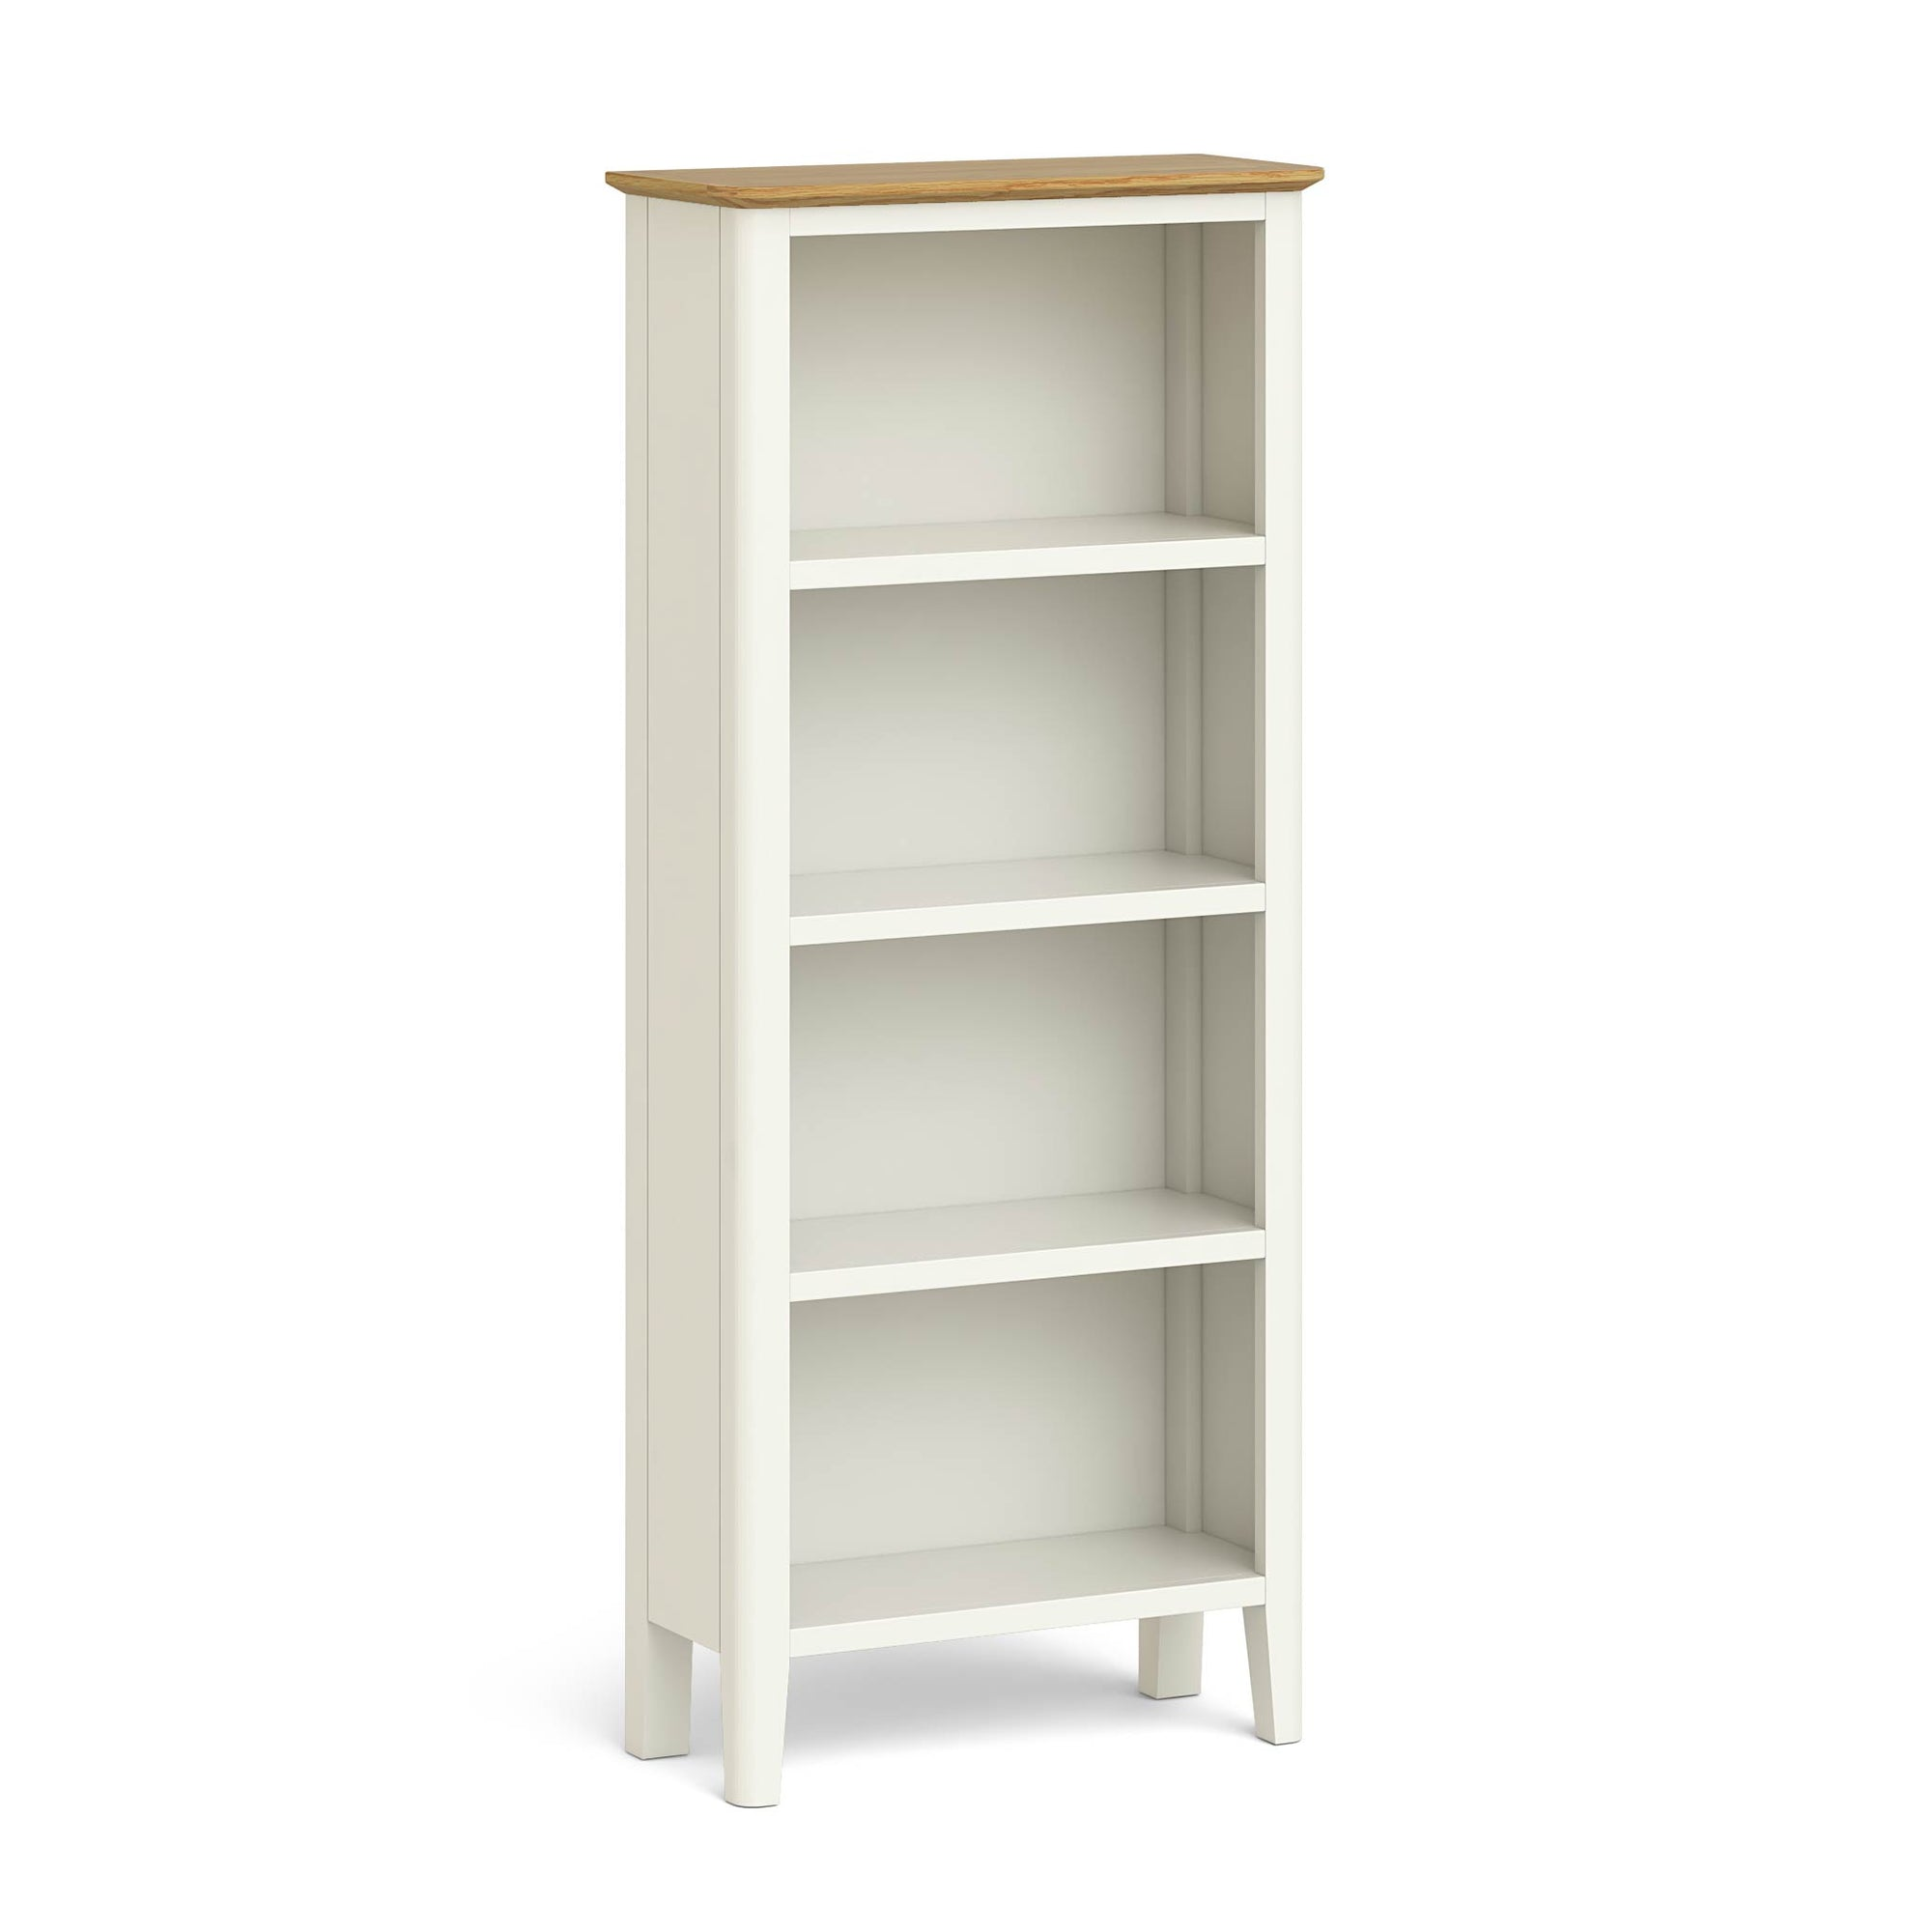 Windsor Cream Slim Bookcase by Roseland Furniture